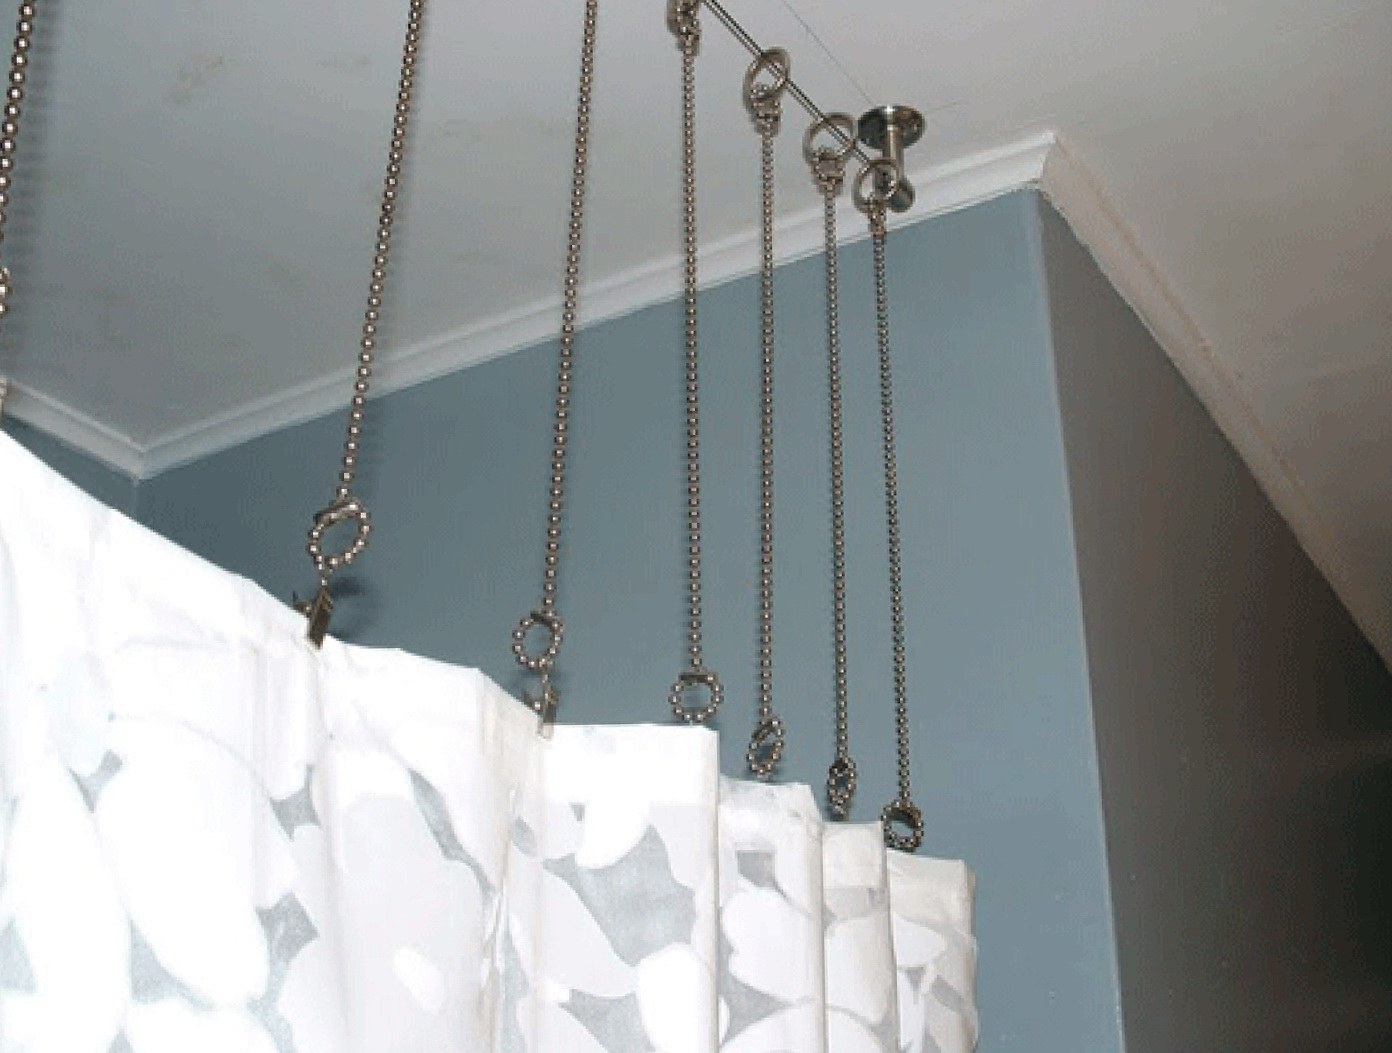 ikea track shower decorative mounted curtain mount curtains concepts dlrn design rods ceiling